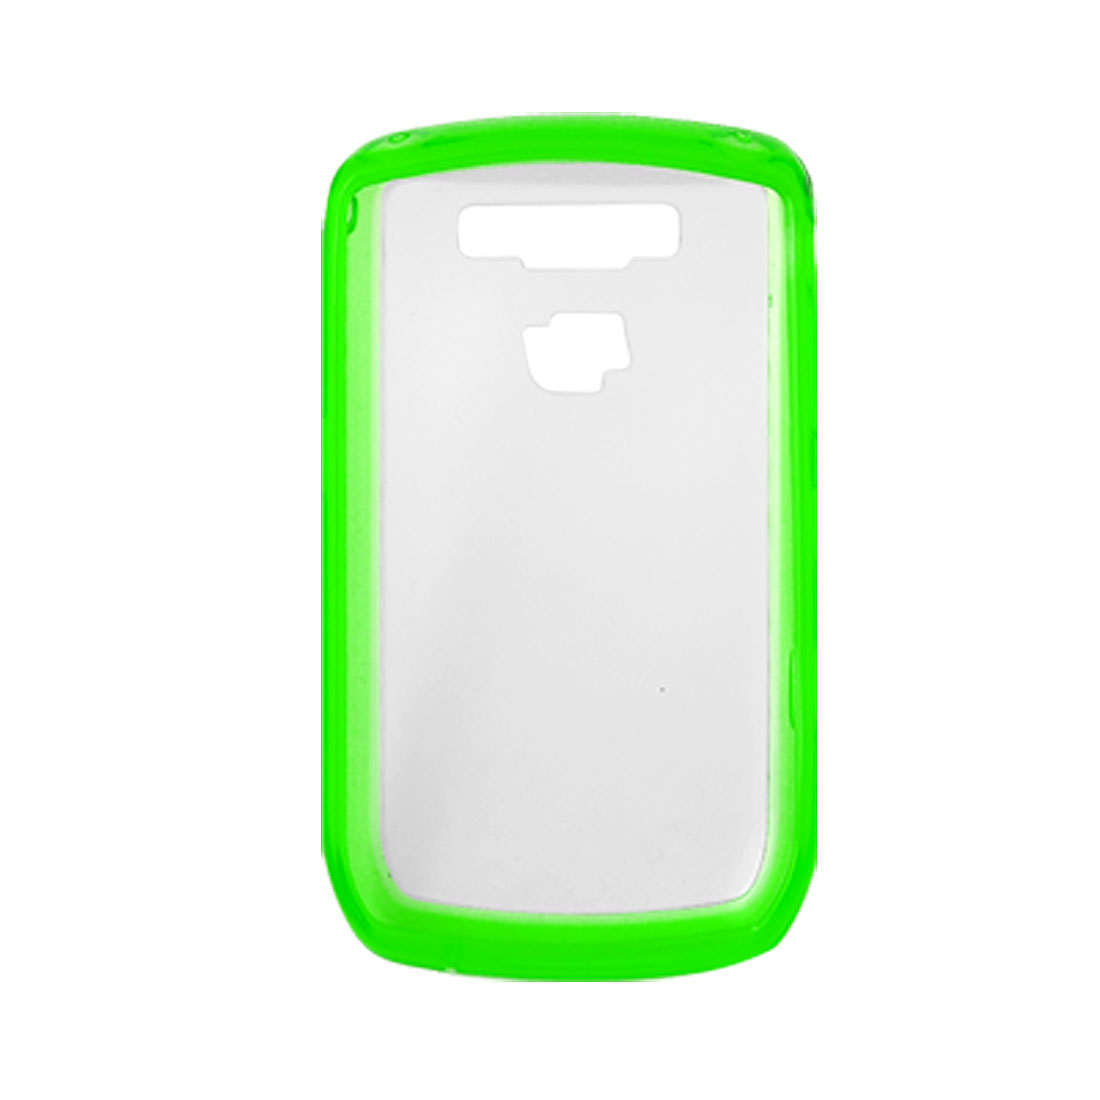 Green Clear Anti Glare Case Shell for Blackberry 8900